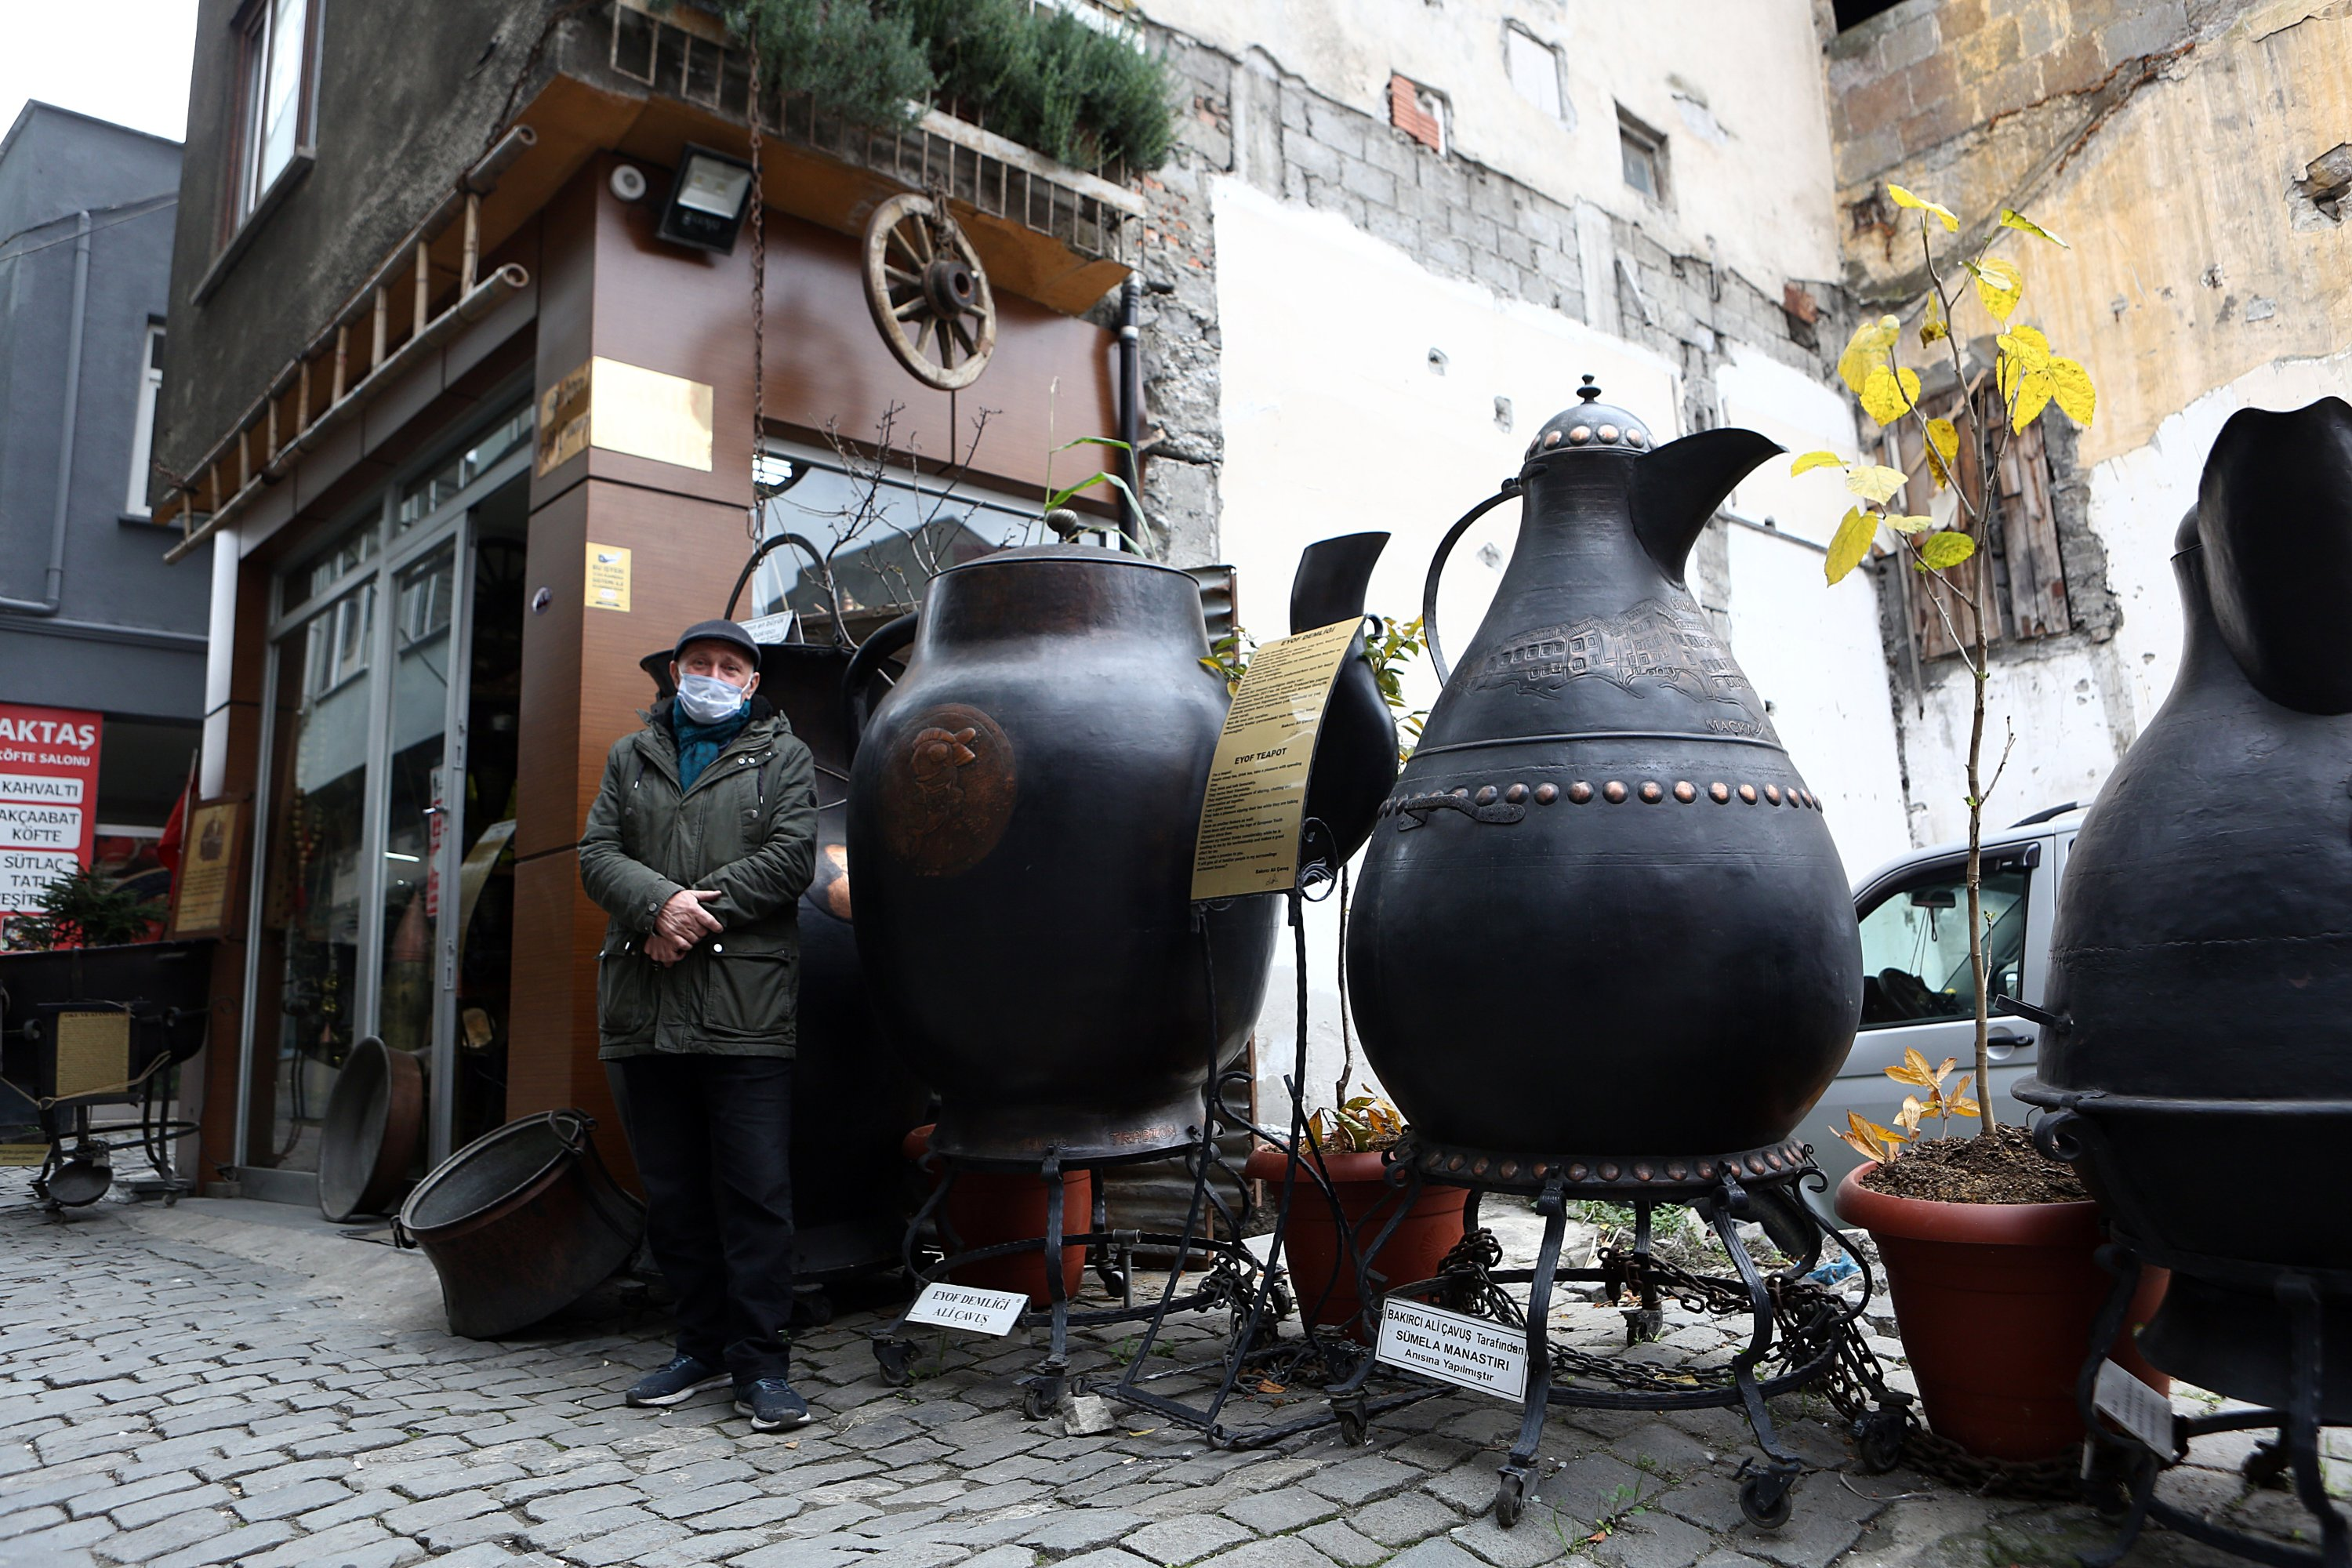 Ali Çavuş poses with his giant copperware in front of his workshop in Trabzon, northern Turkey, Dec. 24, 2020. (AA PHOTO)